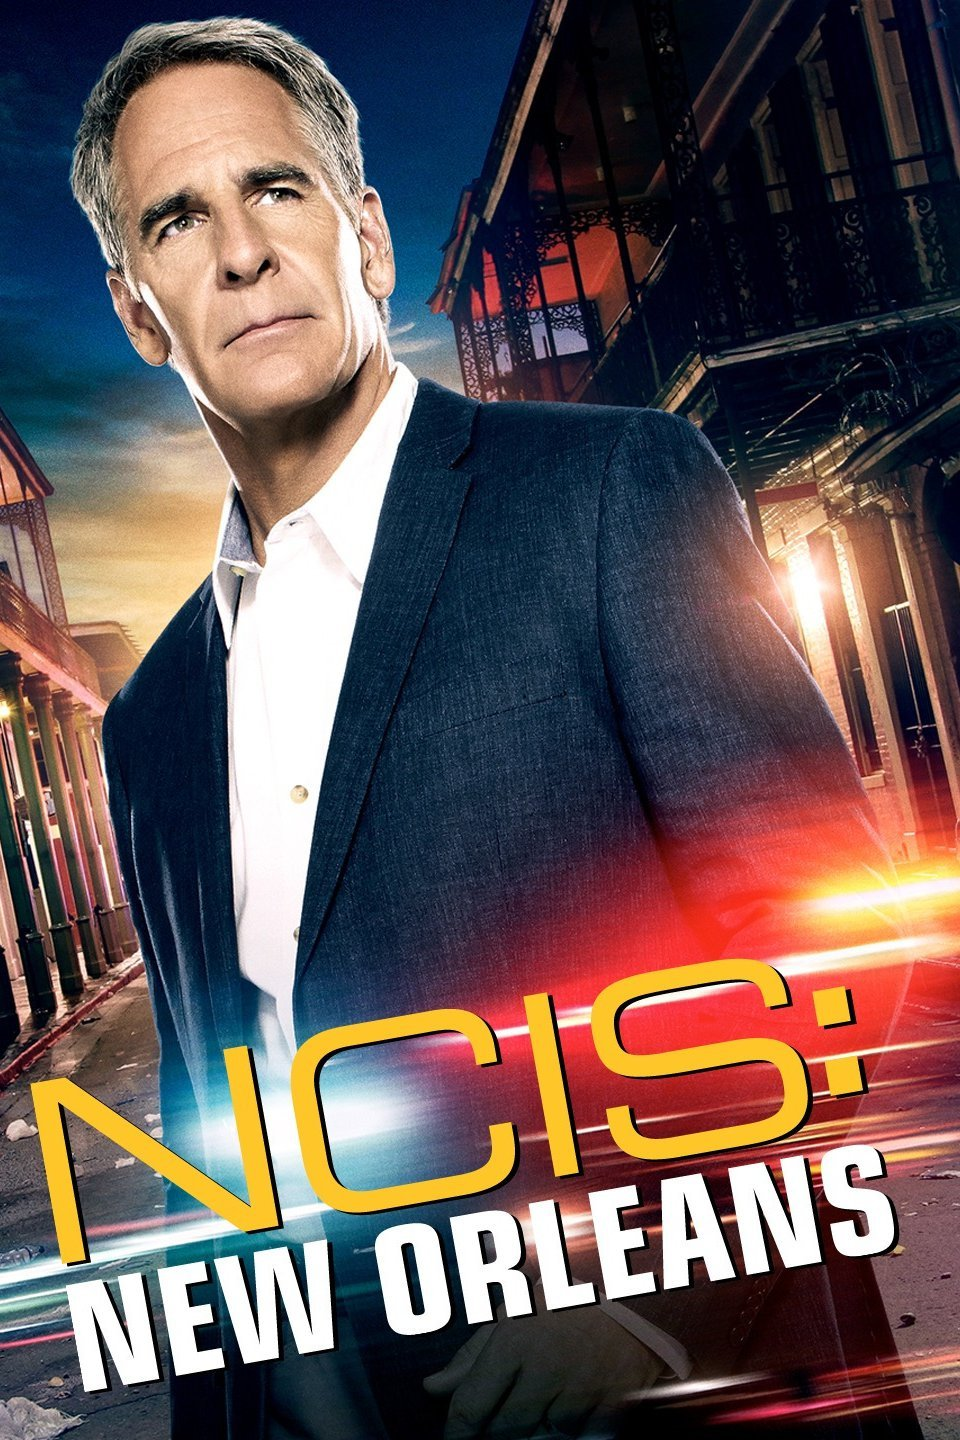 NCIS New Orleans Season 4 Episode 12 Download 480p